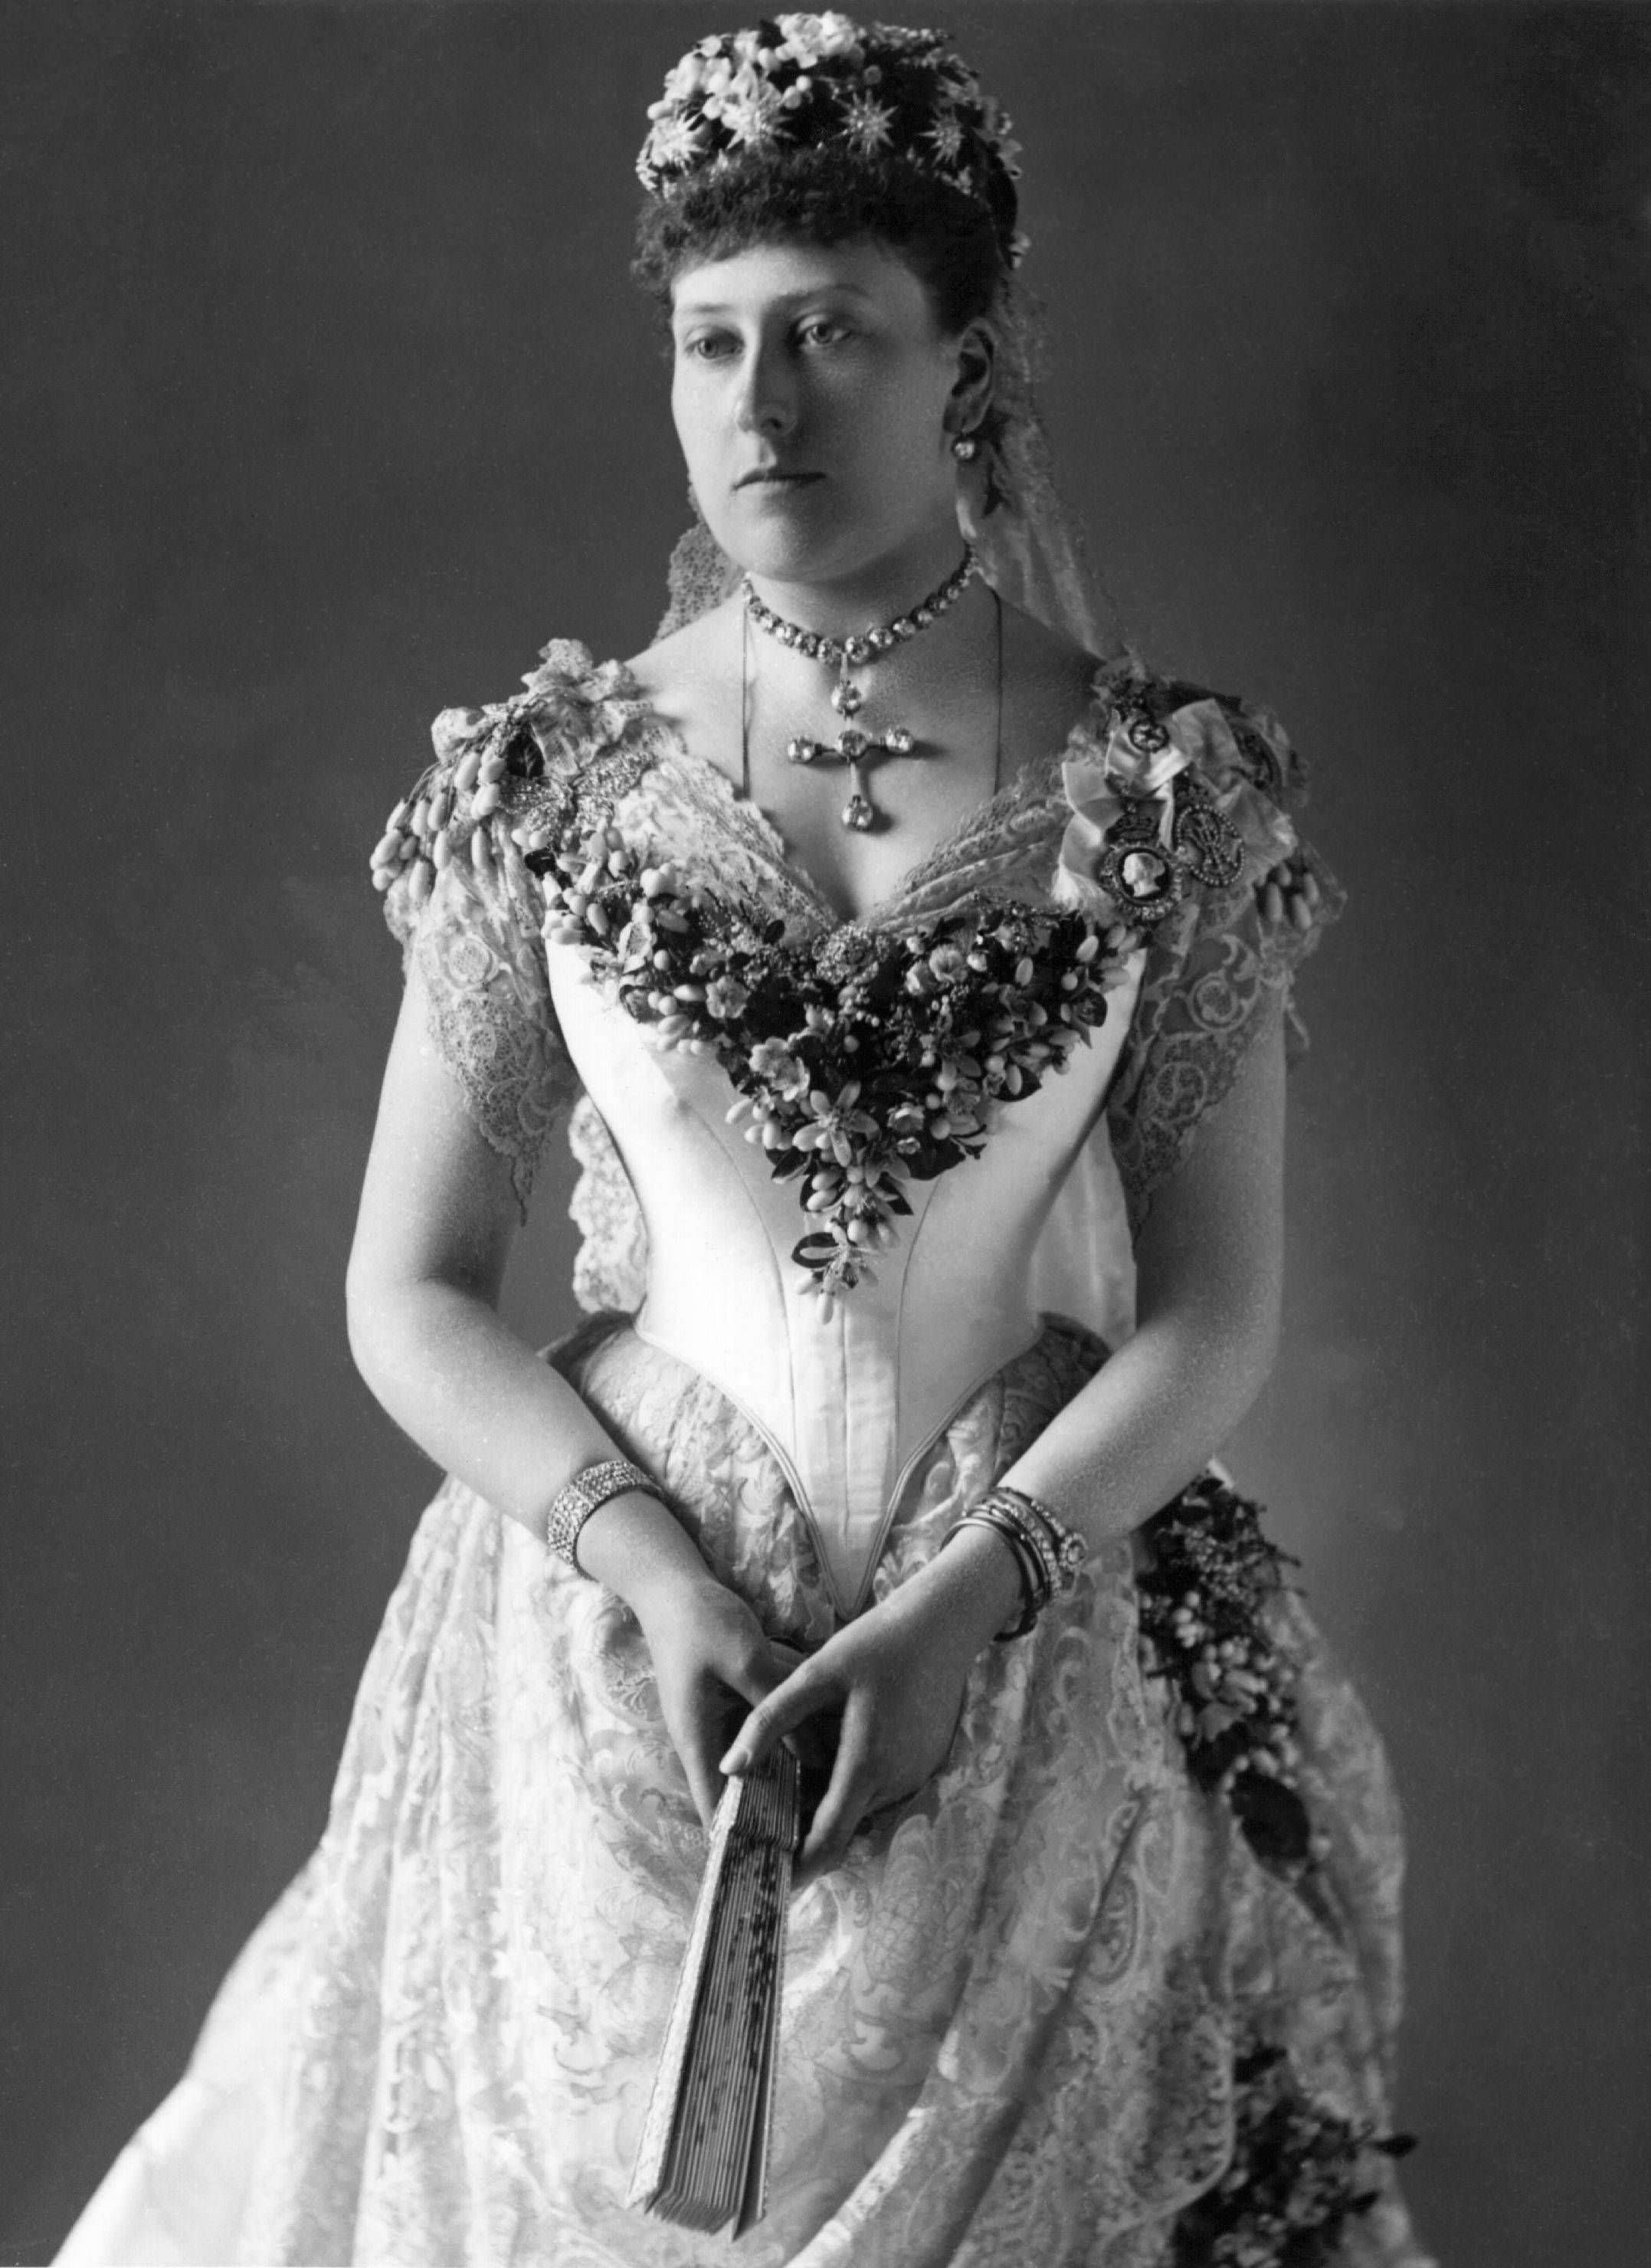 1885 Princess Beatrice posing in her wedding dress